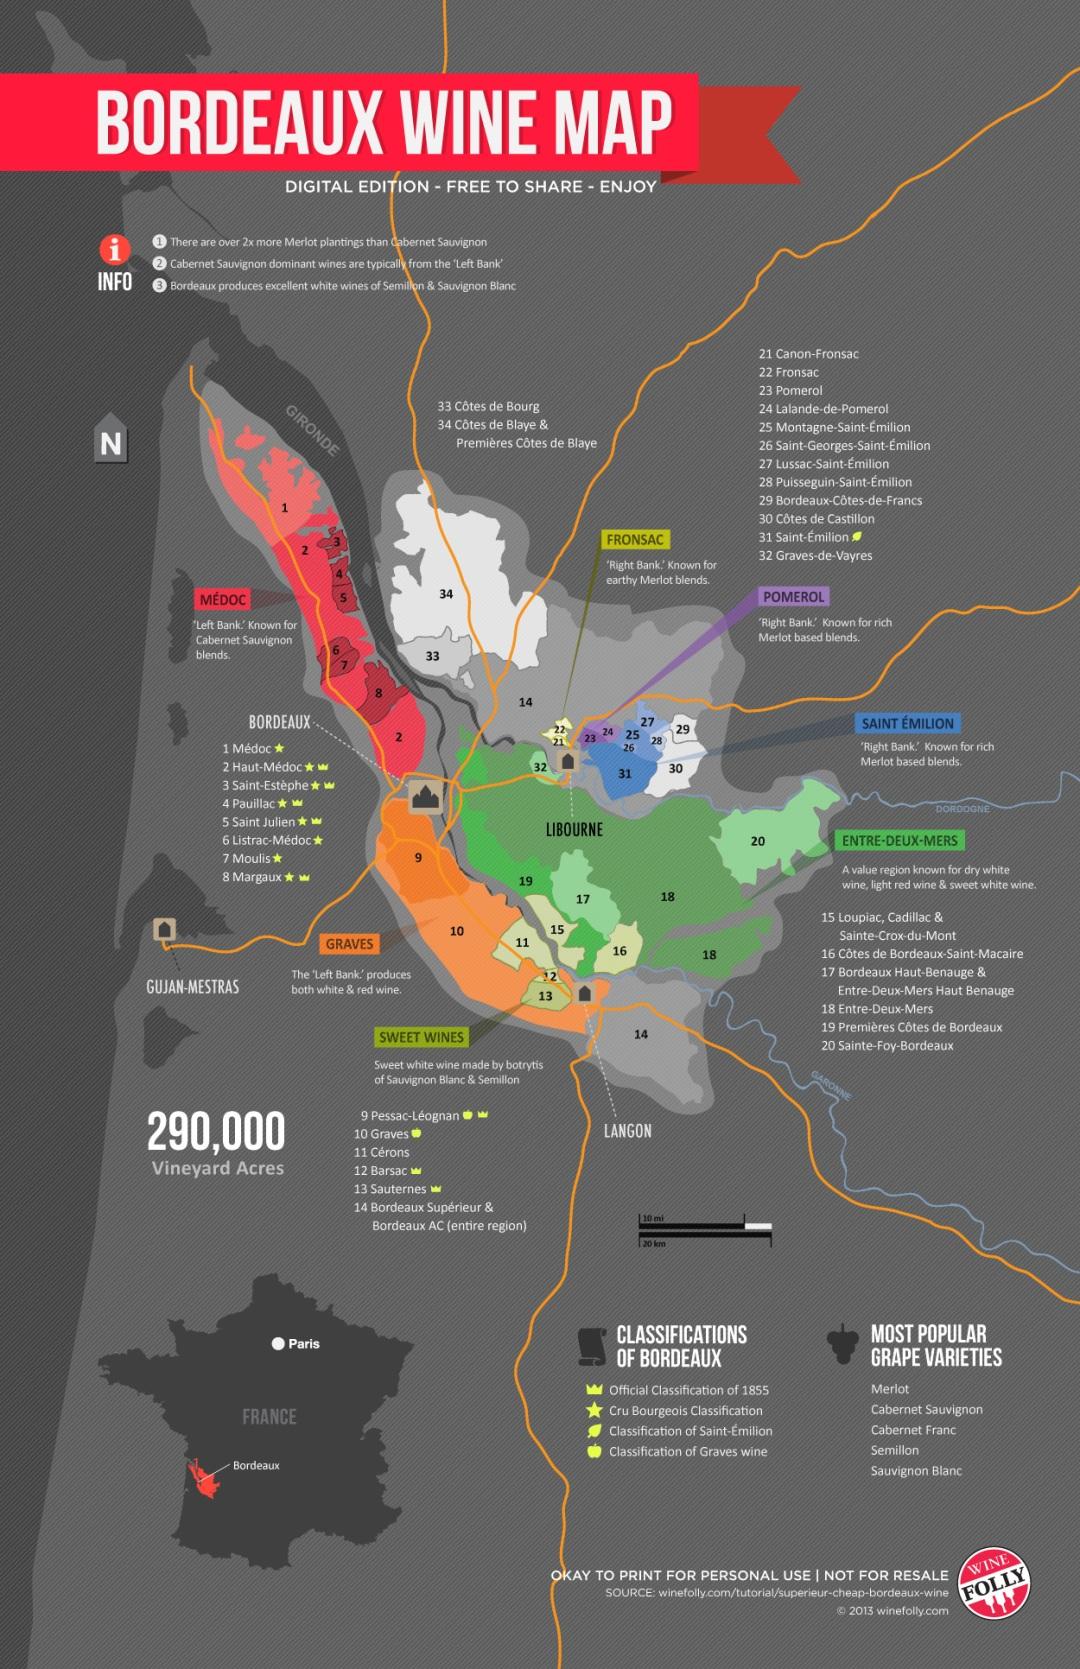 bordeaux-wine-map-by-wine-folly - Copy